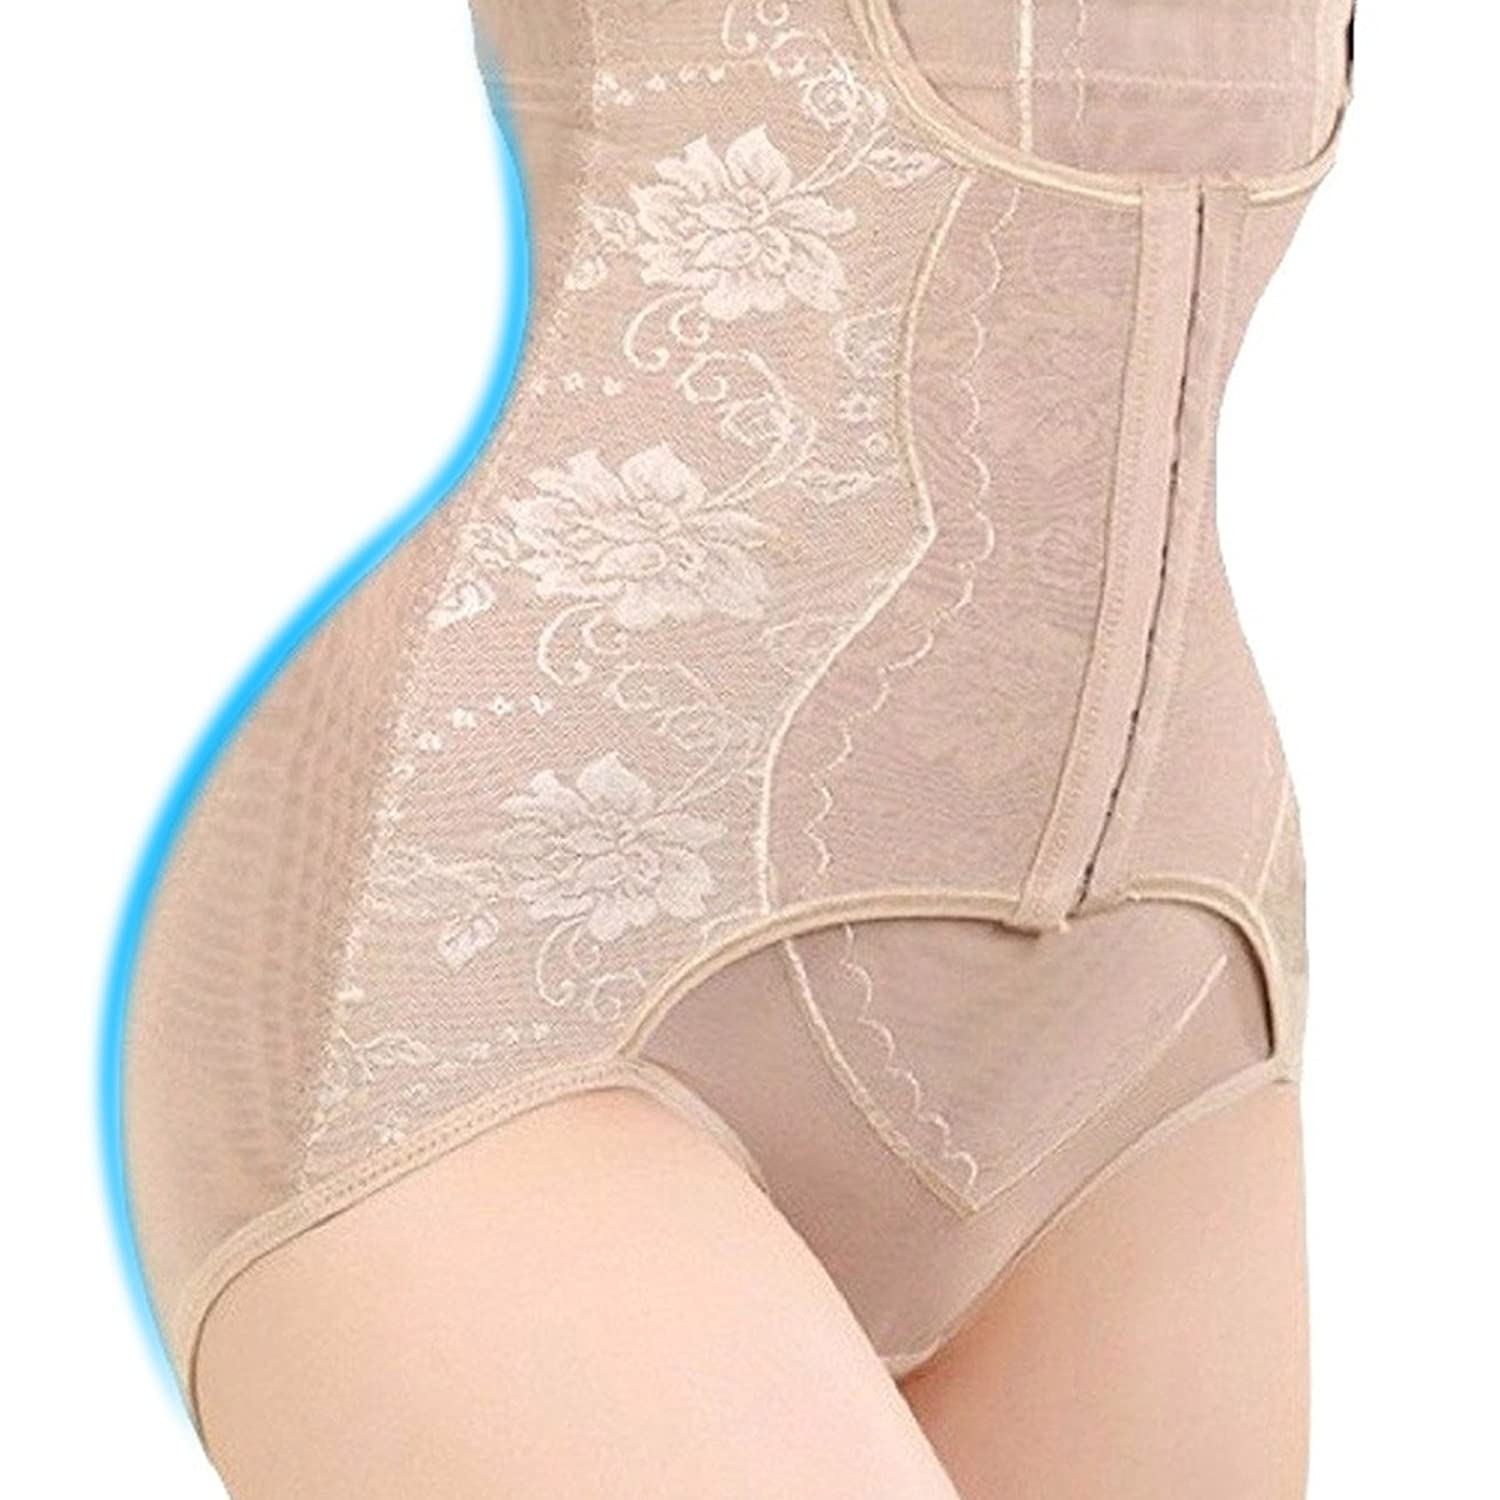 a9406af14 FRIM TUMMY CONTROL WITH 3 HOOKS  LovBeauty High waisted tummy control  panties adpots the power cinching with 3 hooks and eye columns in order to  realize the ...